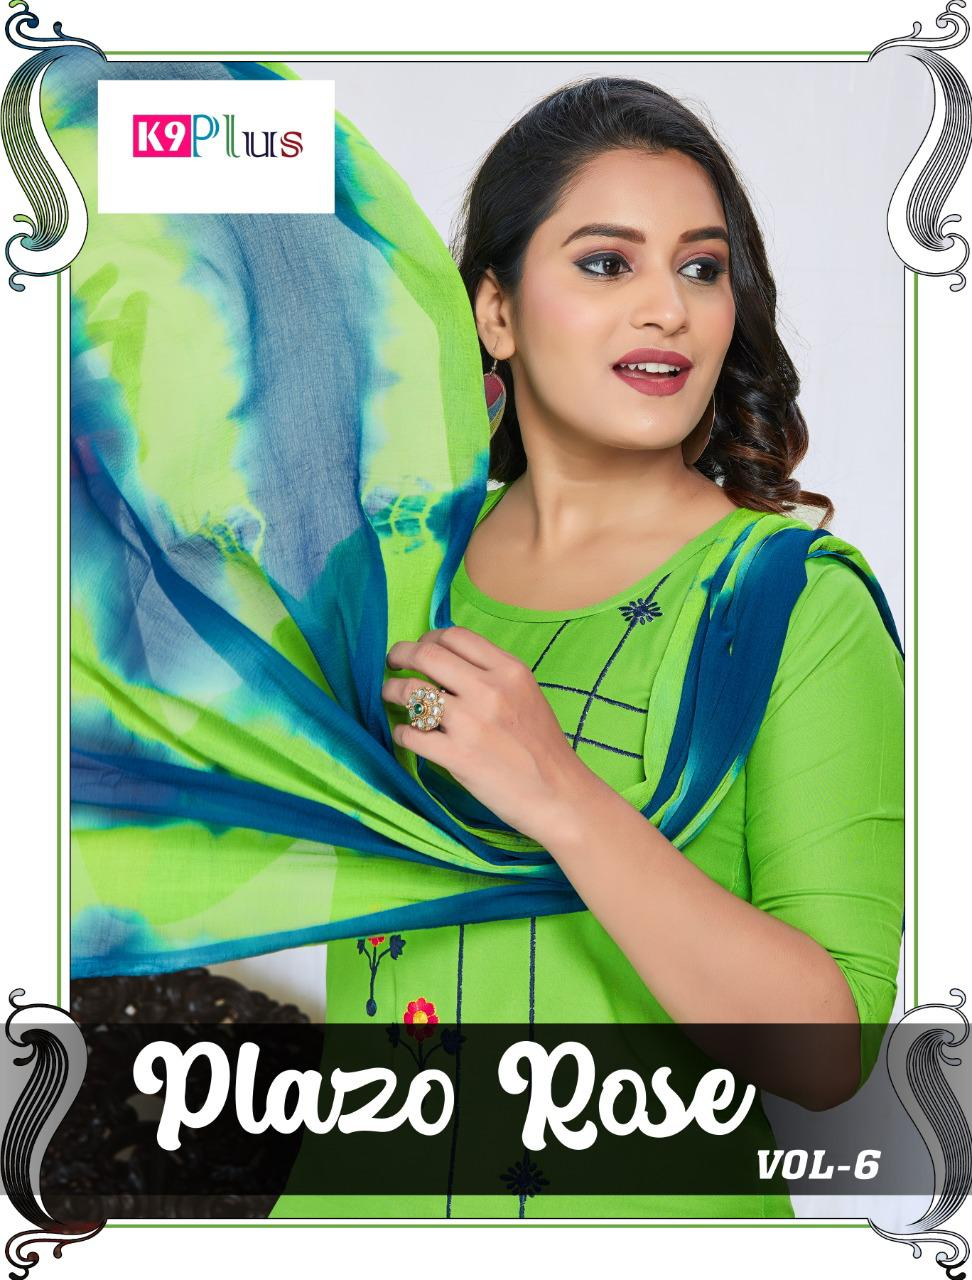 K9 Plus Plazo Rose Vol 6 Top Palazzo With Dupatta 3 Piece Readymade Collection